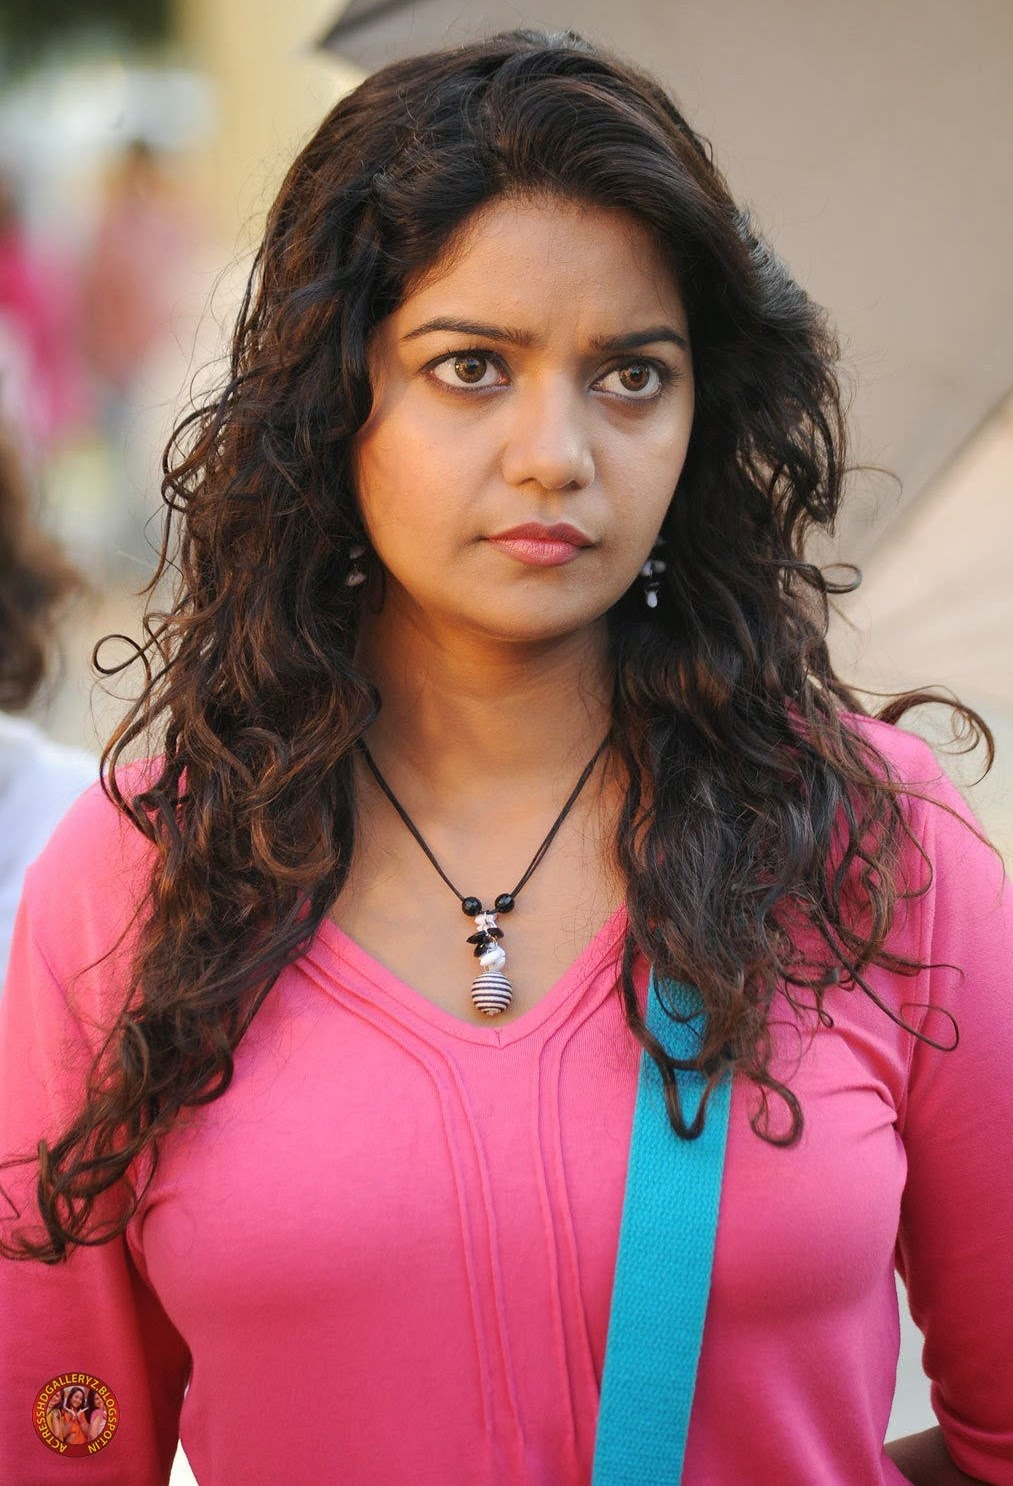 actress hd gallery: swathi actress beautiful pics from karthikeyan